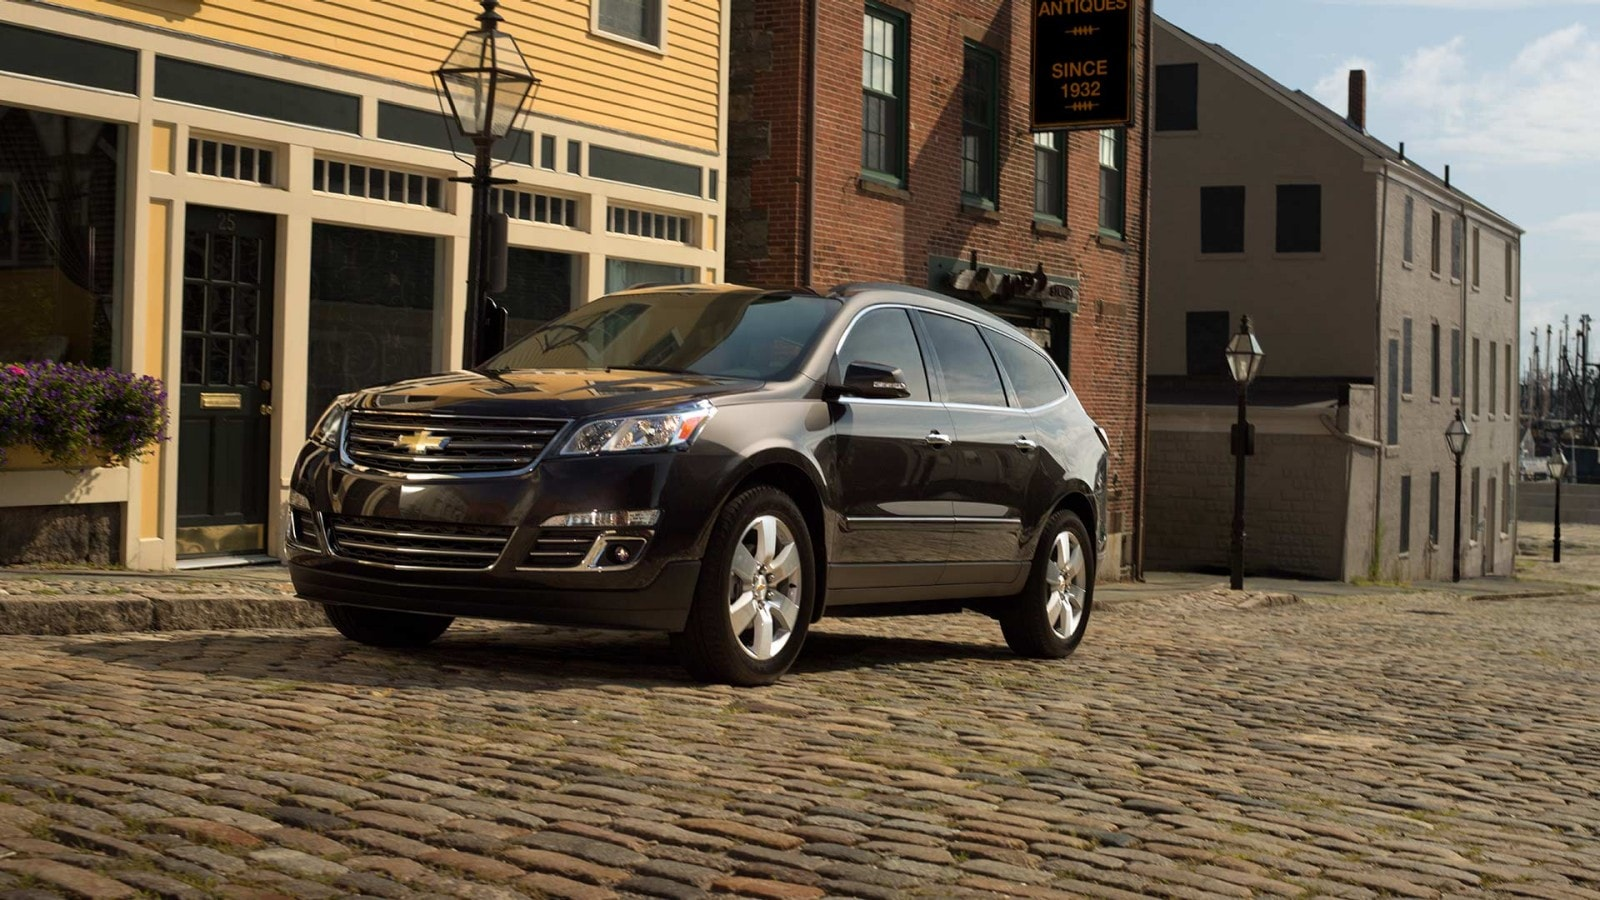 chevy zero interest car loan 0 apr on new chevy traverse in ma. Black Bedroom Furniture Sets. Home Design Ideas